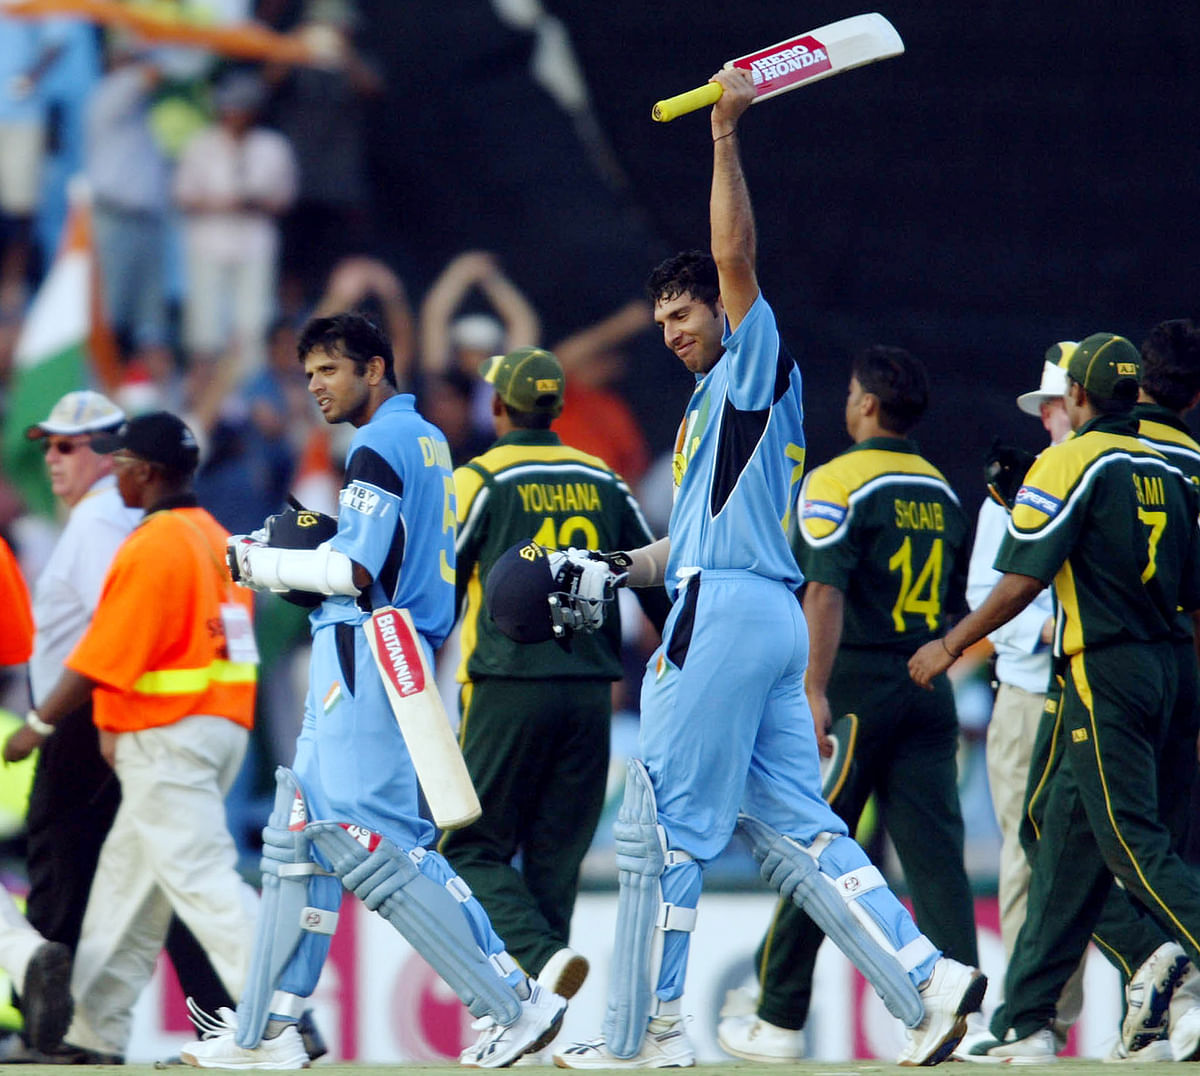 Rahul Dravid and Yuvraj Singh celebrate the team's 6-wicket victory. (Photo: Reuters)